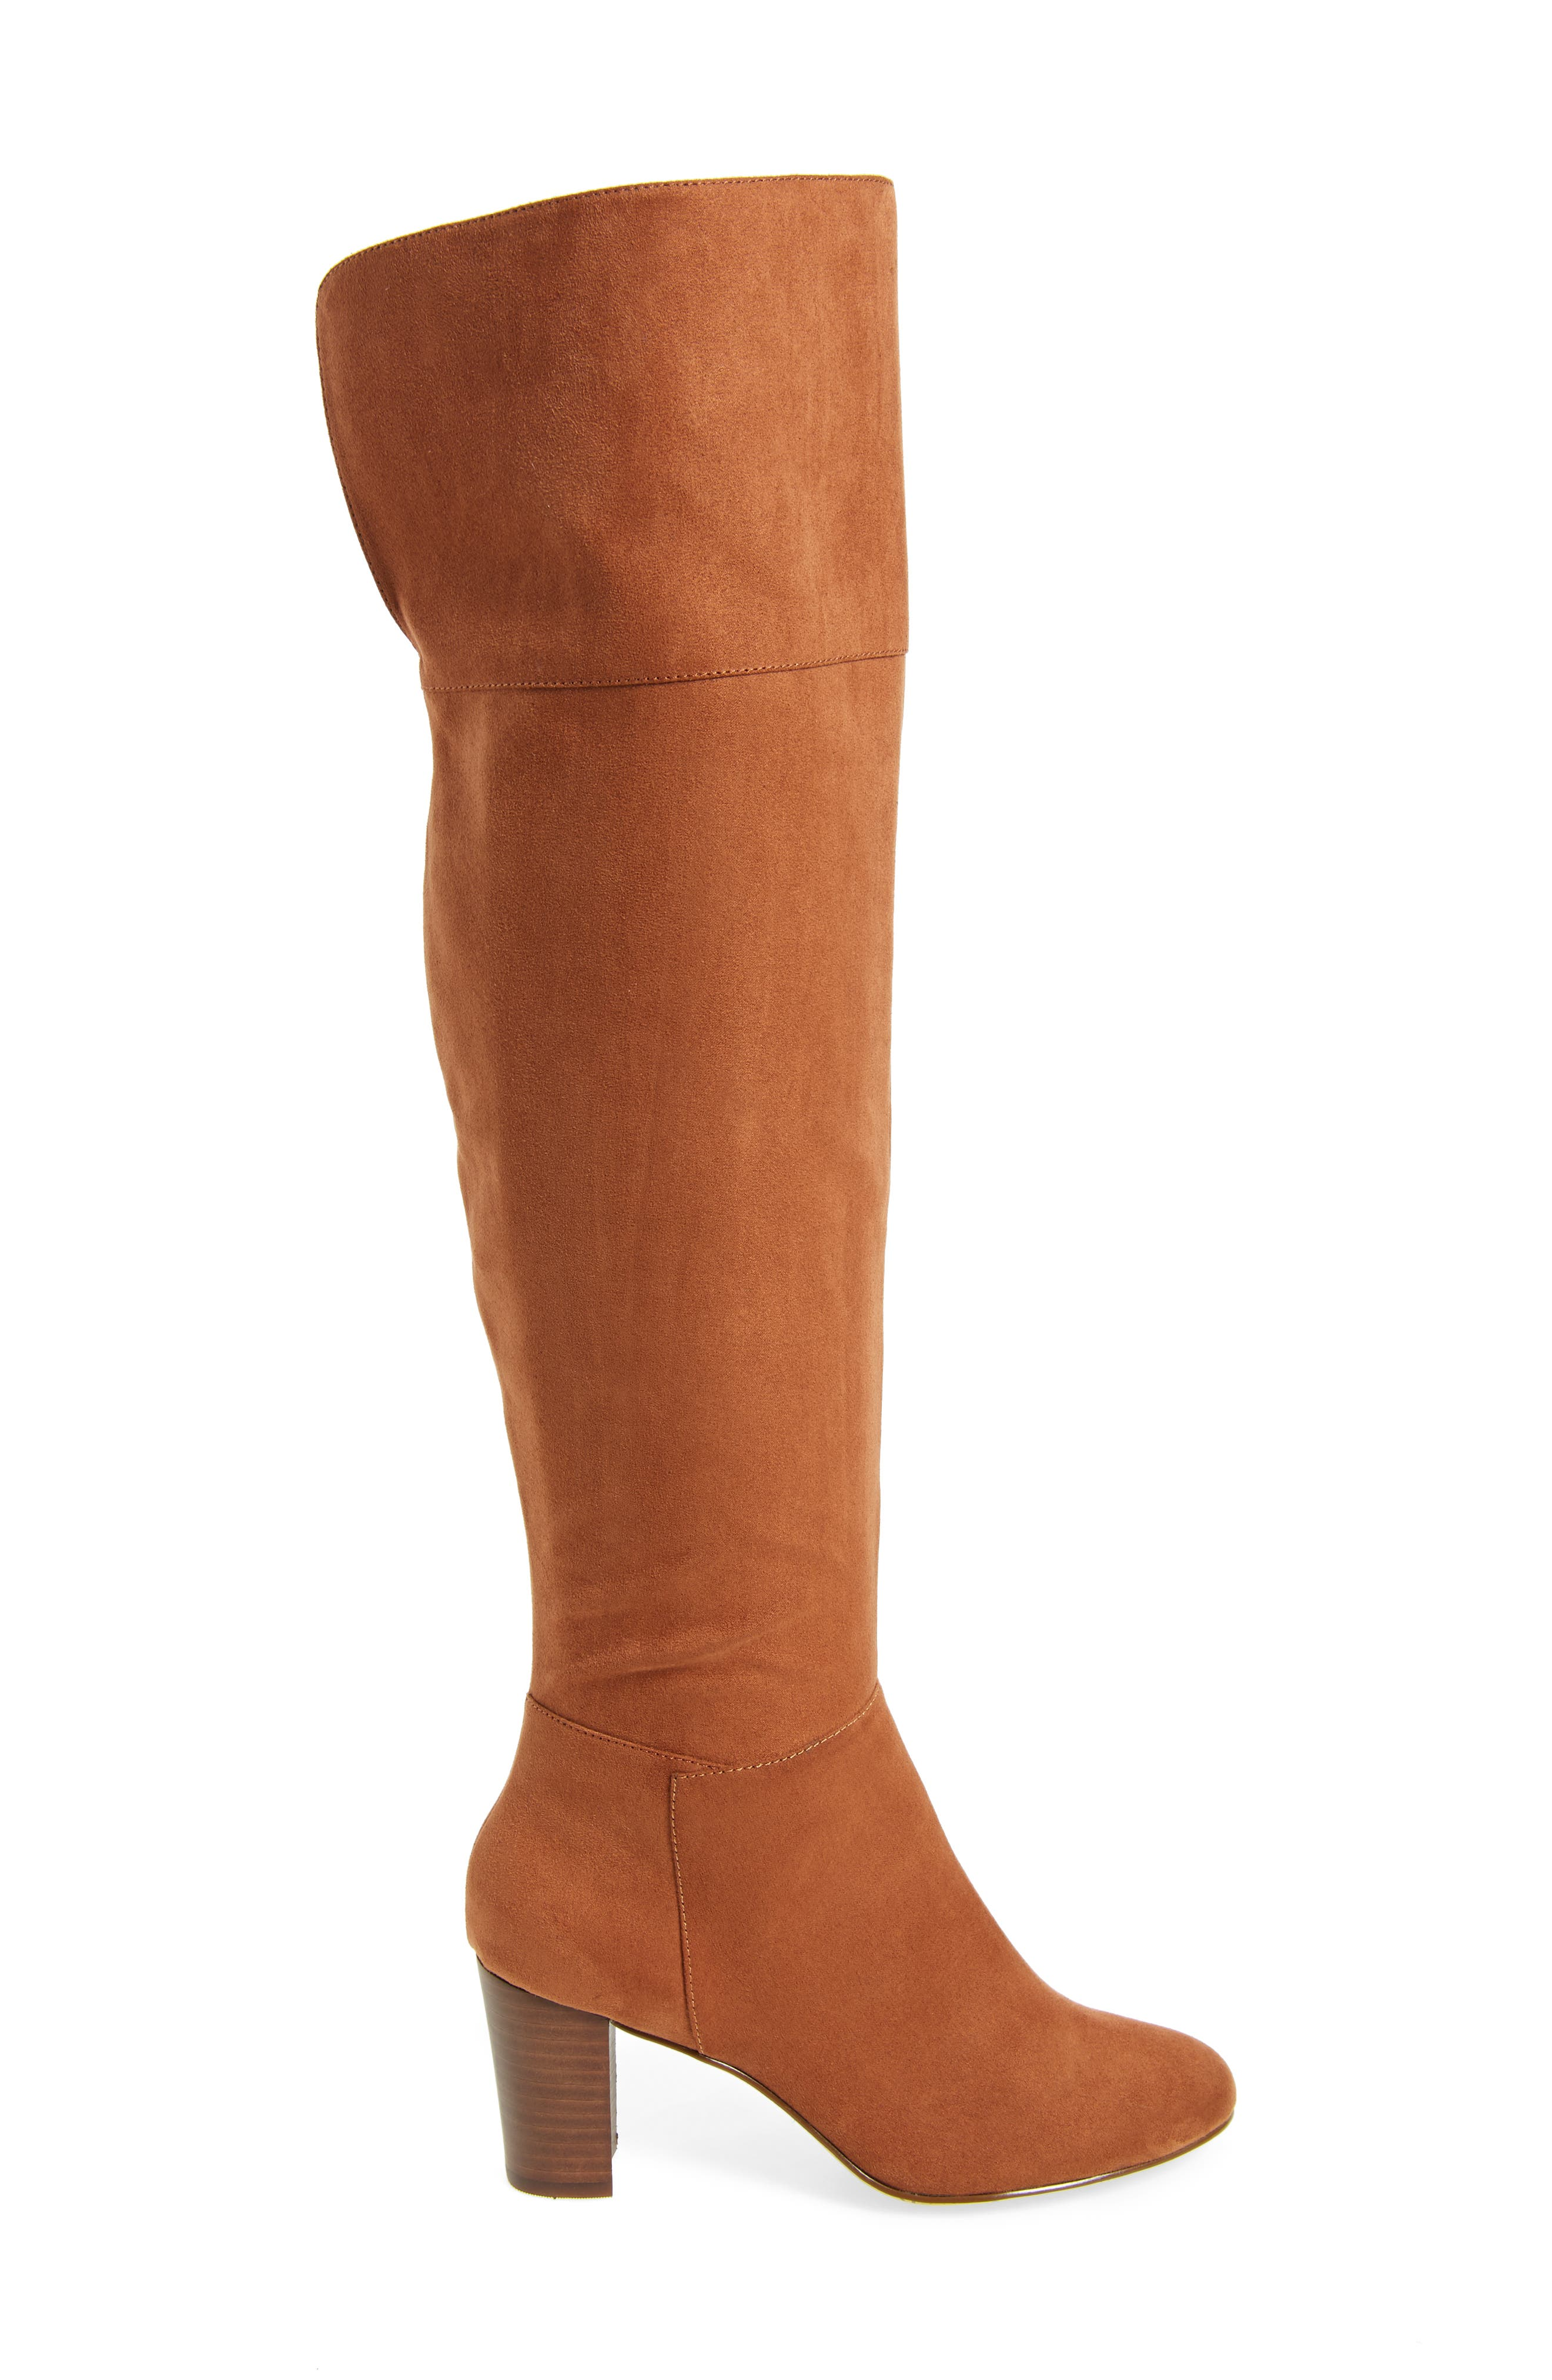 Telluride II Over the Knee Boot,                             Alternate thumbnail 9, color,